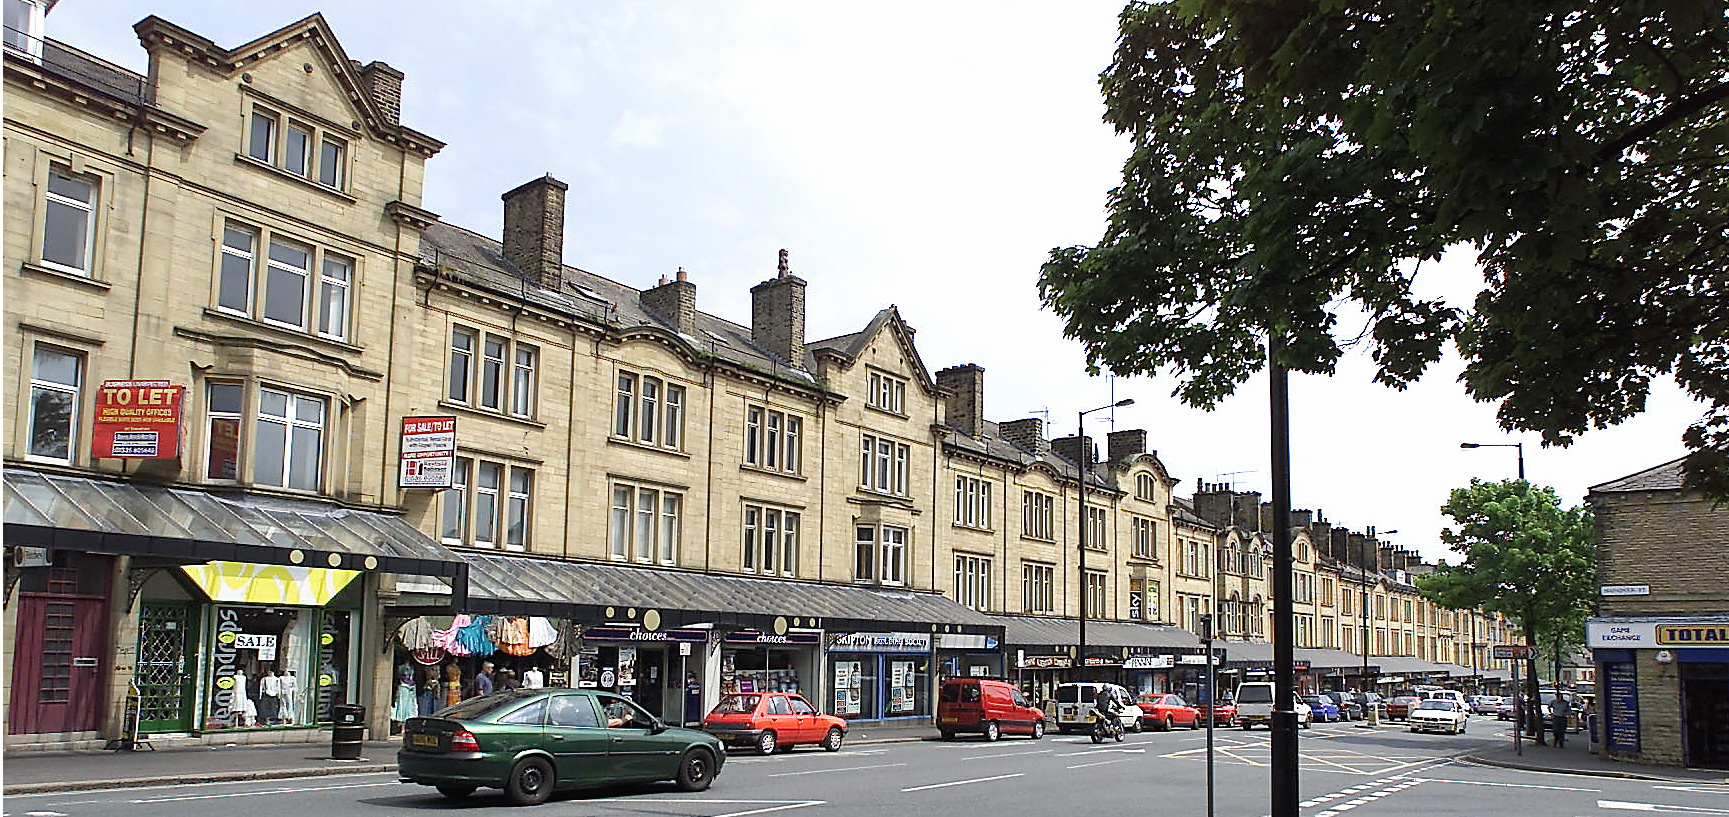 Cavendish Street in Keighley Town Centre